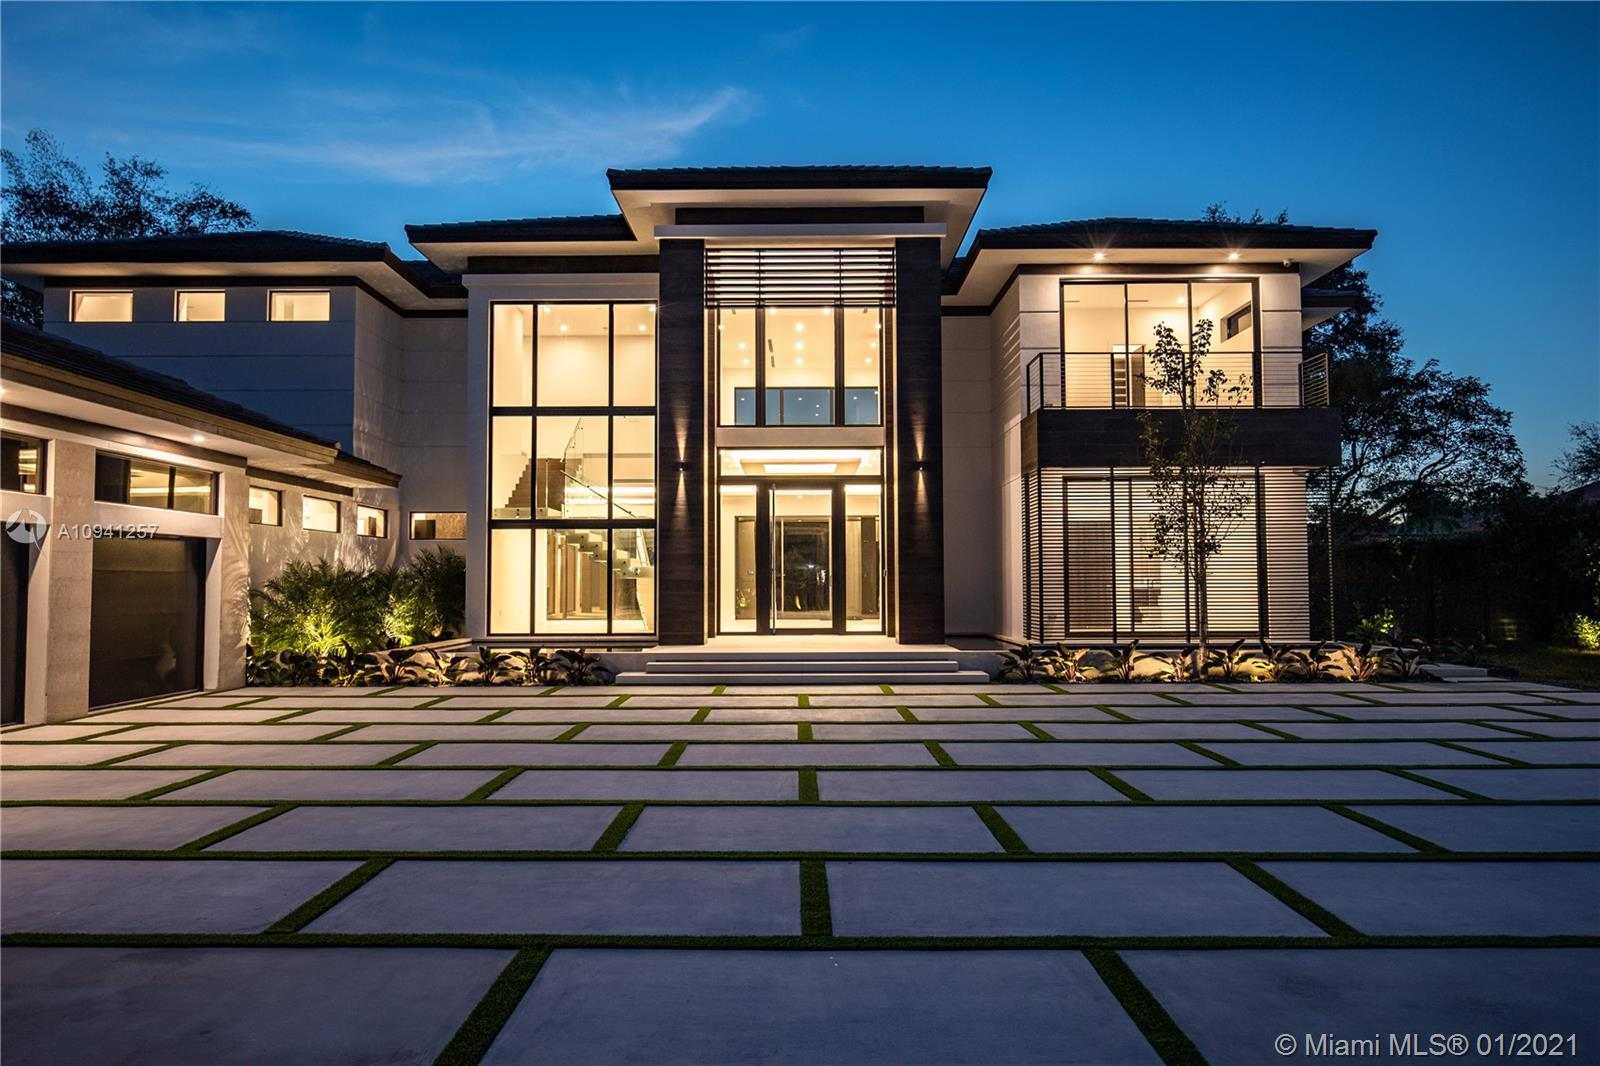 Luxury New Construction Dream Home in South Miami! Luxury features include: 8 Bedrooms   7 1/2 Bathrooms   3-Car Garage   Separate Guest Home   Theater / Media Room   Fully Gated Drive-through Lot   Gourmet Kitchen   Covered Patio   Summer Kitchen   Luxurious Pool   Spa   Grand Water Finishes   Energy Efficient Home   Smart Home Features   Lushly Landscaped Lot   Many more features!